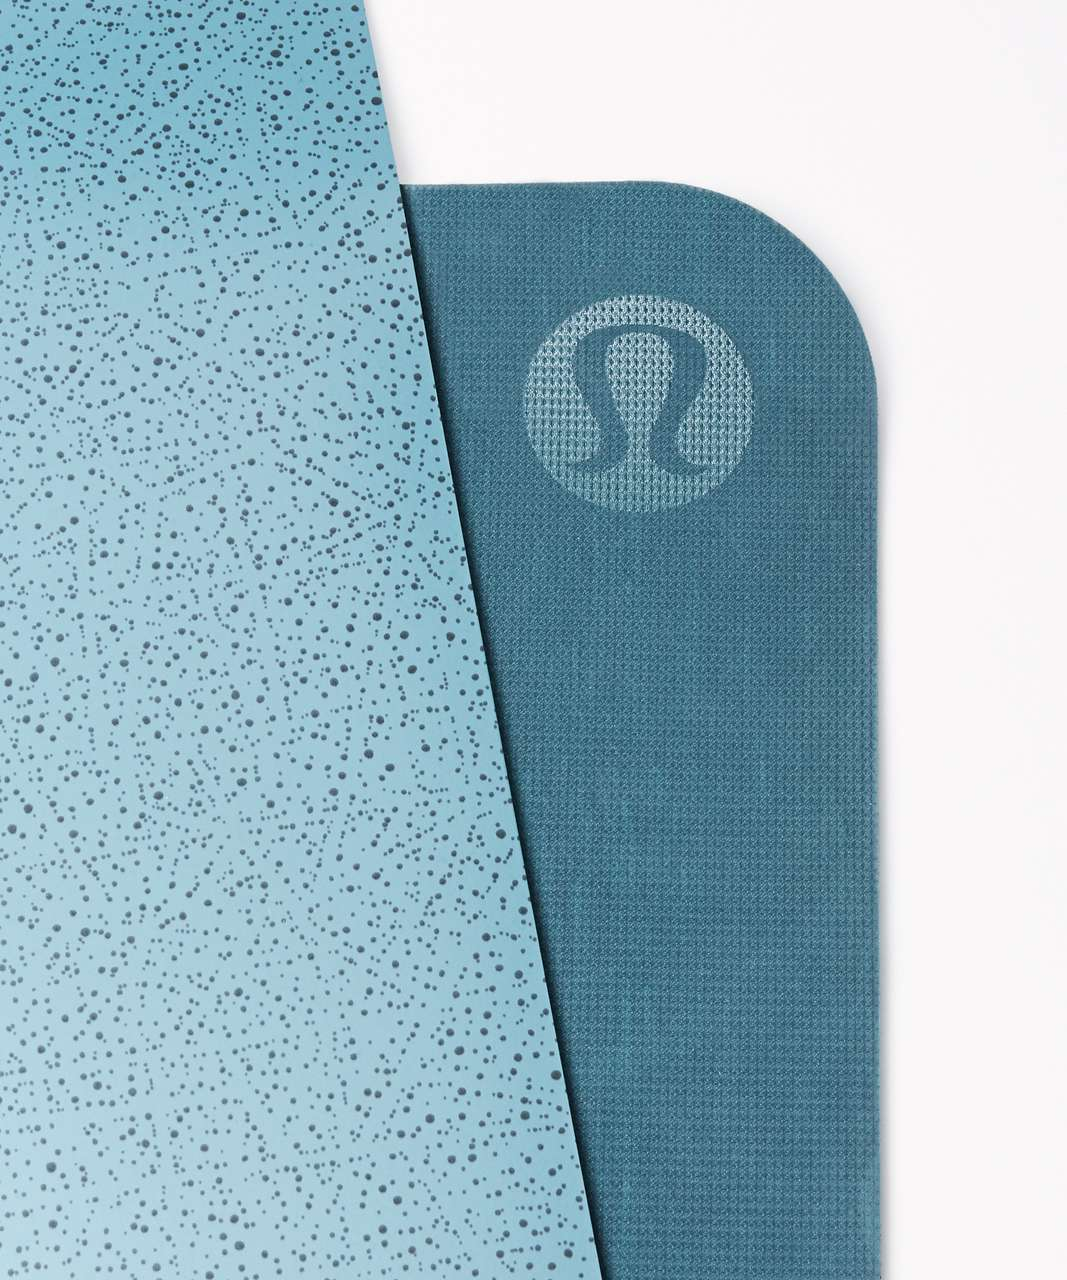 Lululemon The Reversible Mat 5mm - Night View Cyprus Black / Dark Maritime